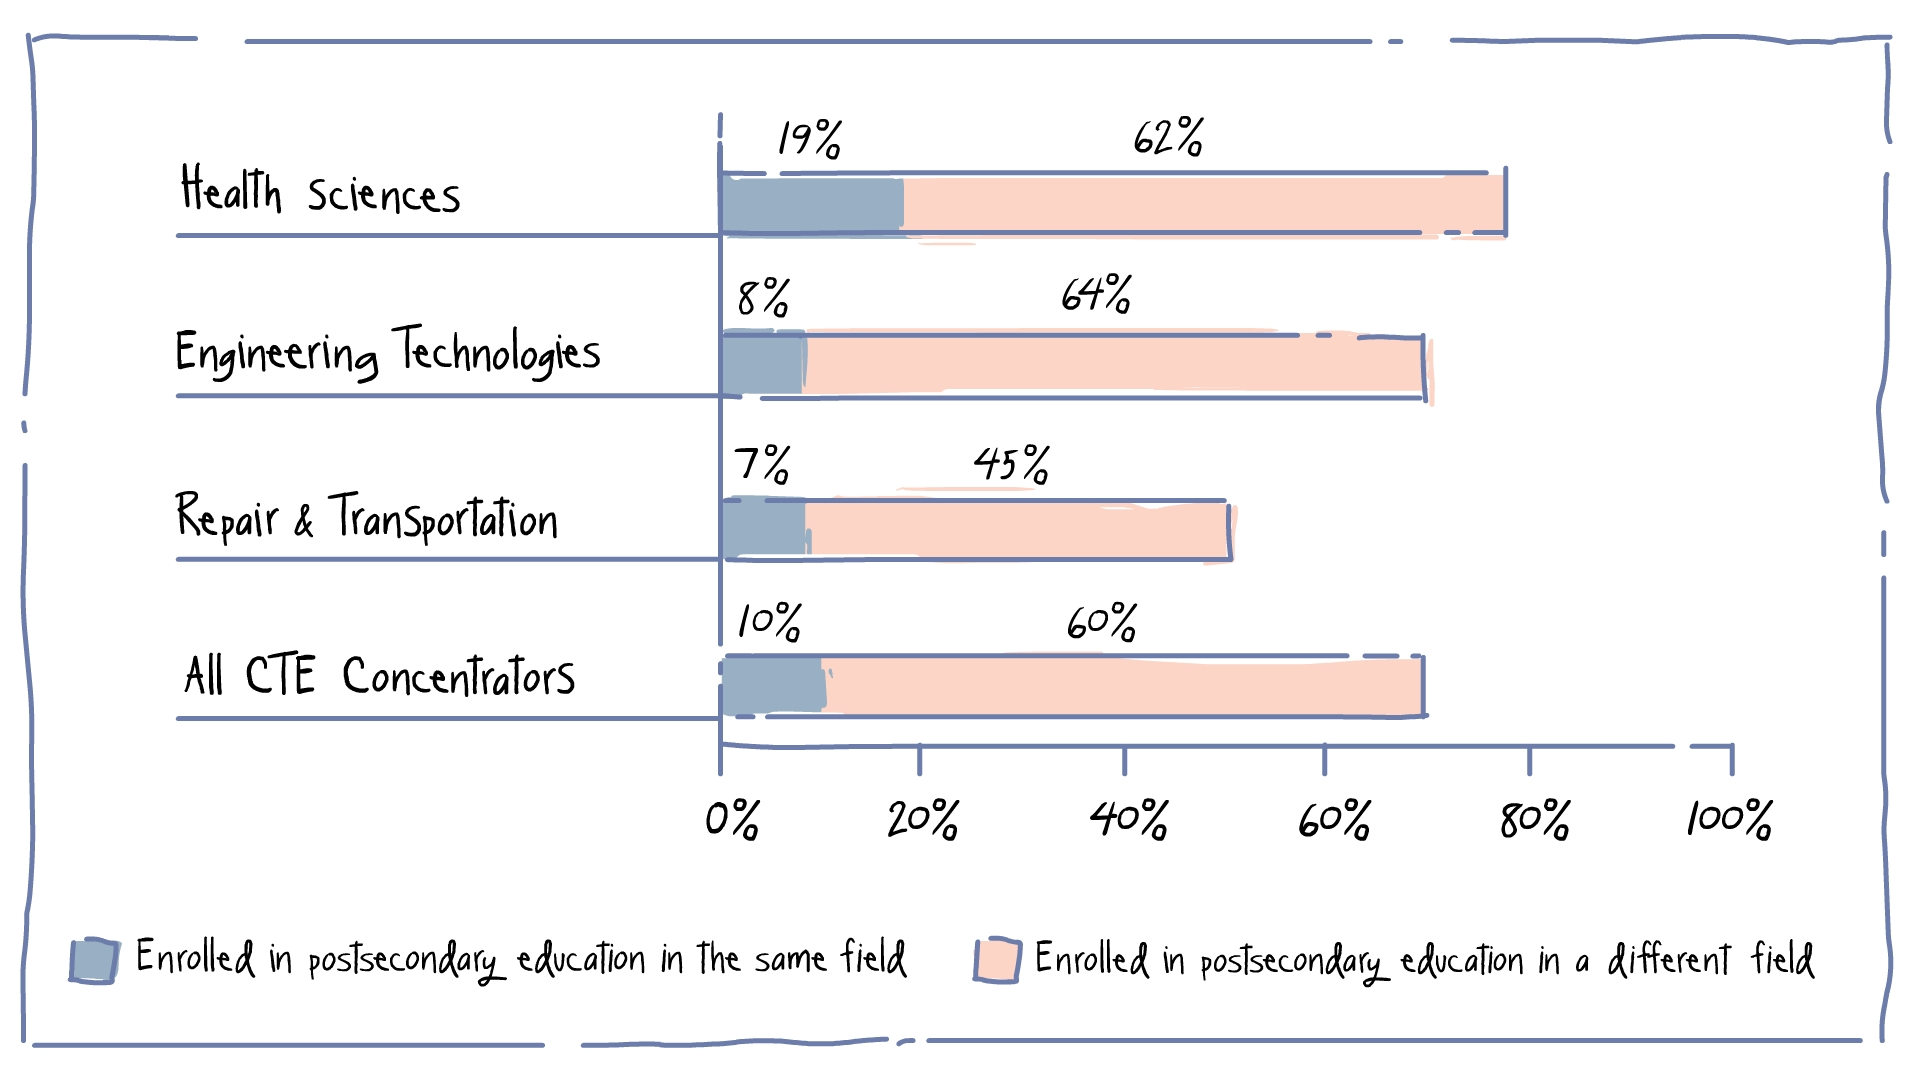 """Source: """"National Assessment of Career and Technical Education – Final Report to Congress"""". U.S. Department of Education. 2014. P. 91. Archived at: https://www2.ed.gov/rschstat/eval/sectech/nacte/career-technical-education/final-report.pdf"""